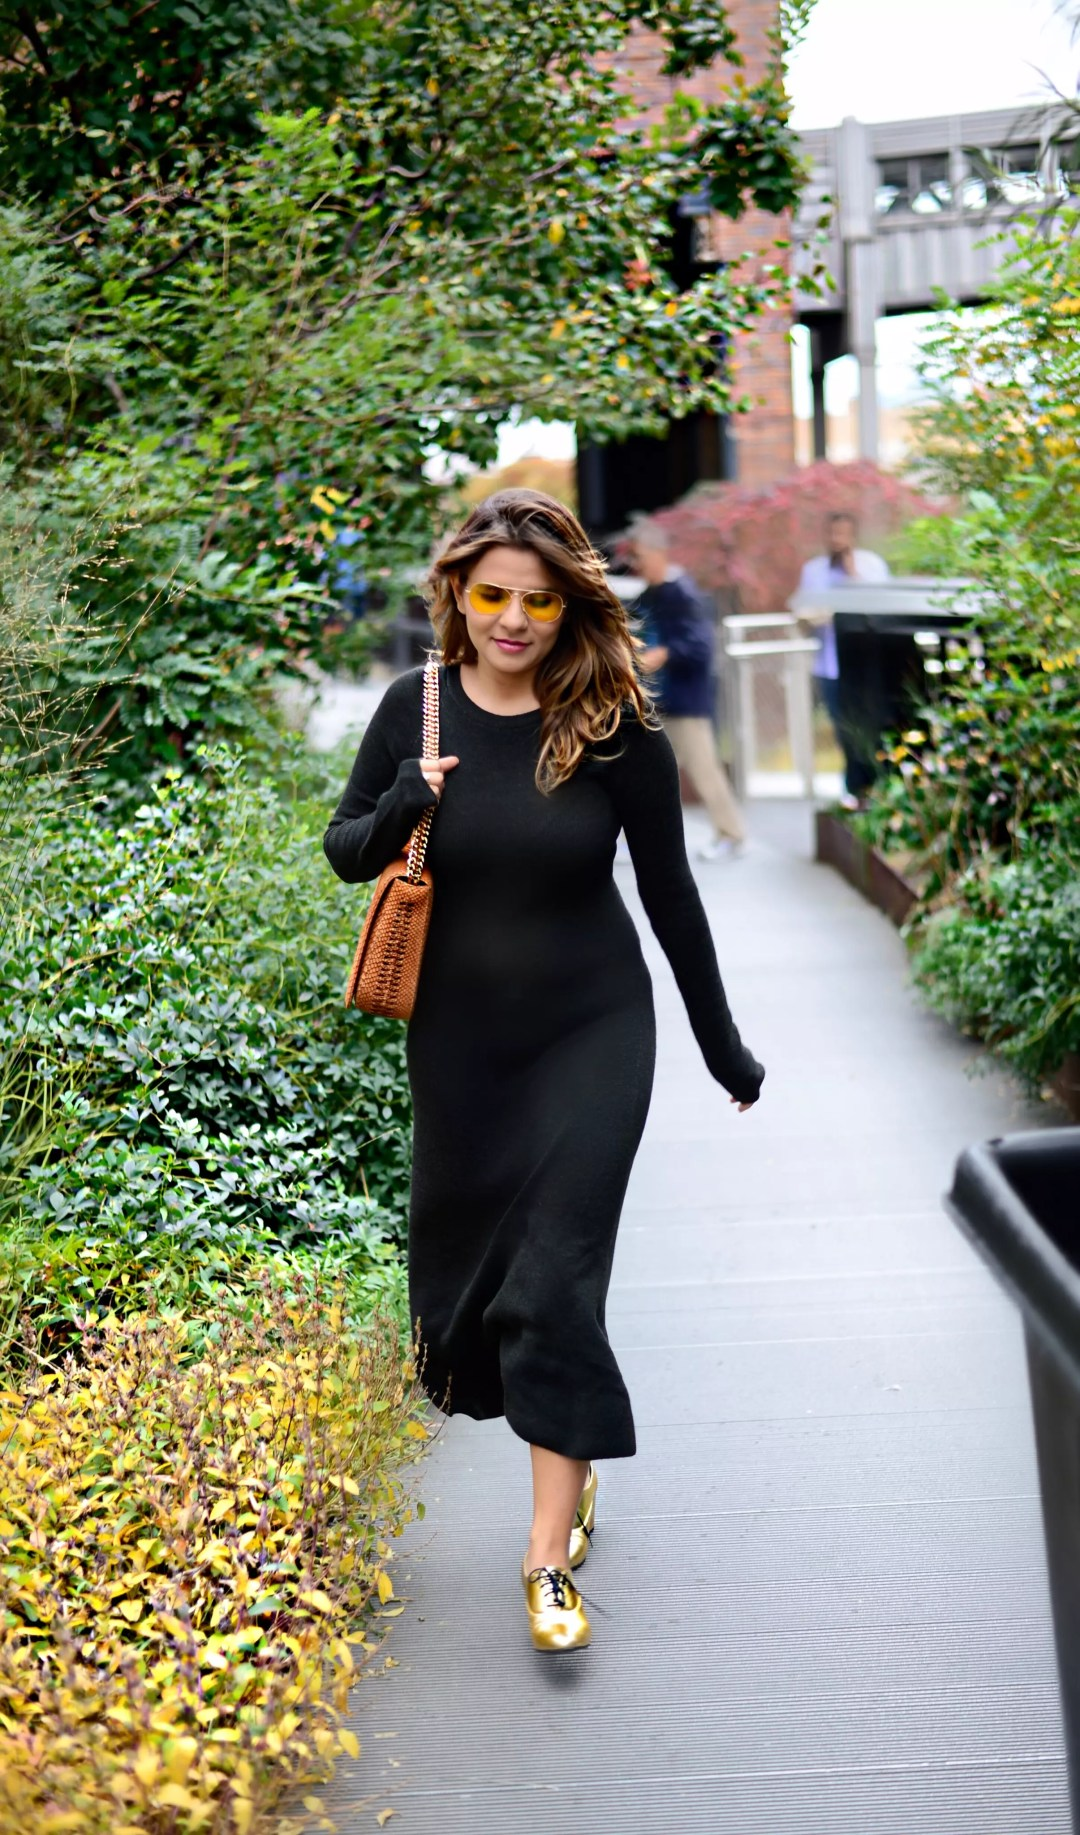 jersey-dress-gold-shoes-alley-girl-betul-yildiz-new-york-fashion-blogger-14